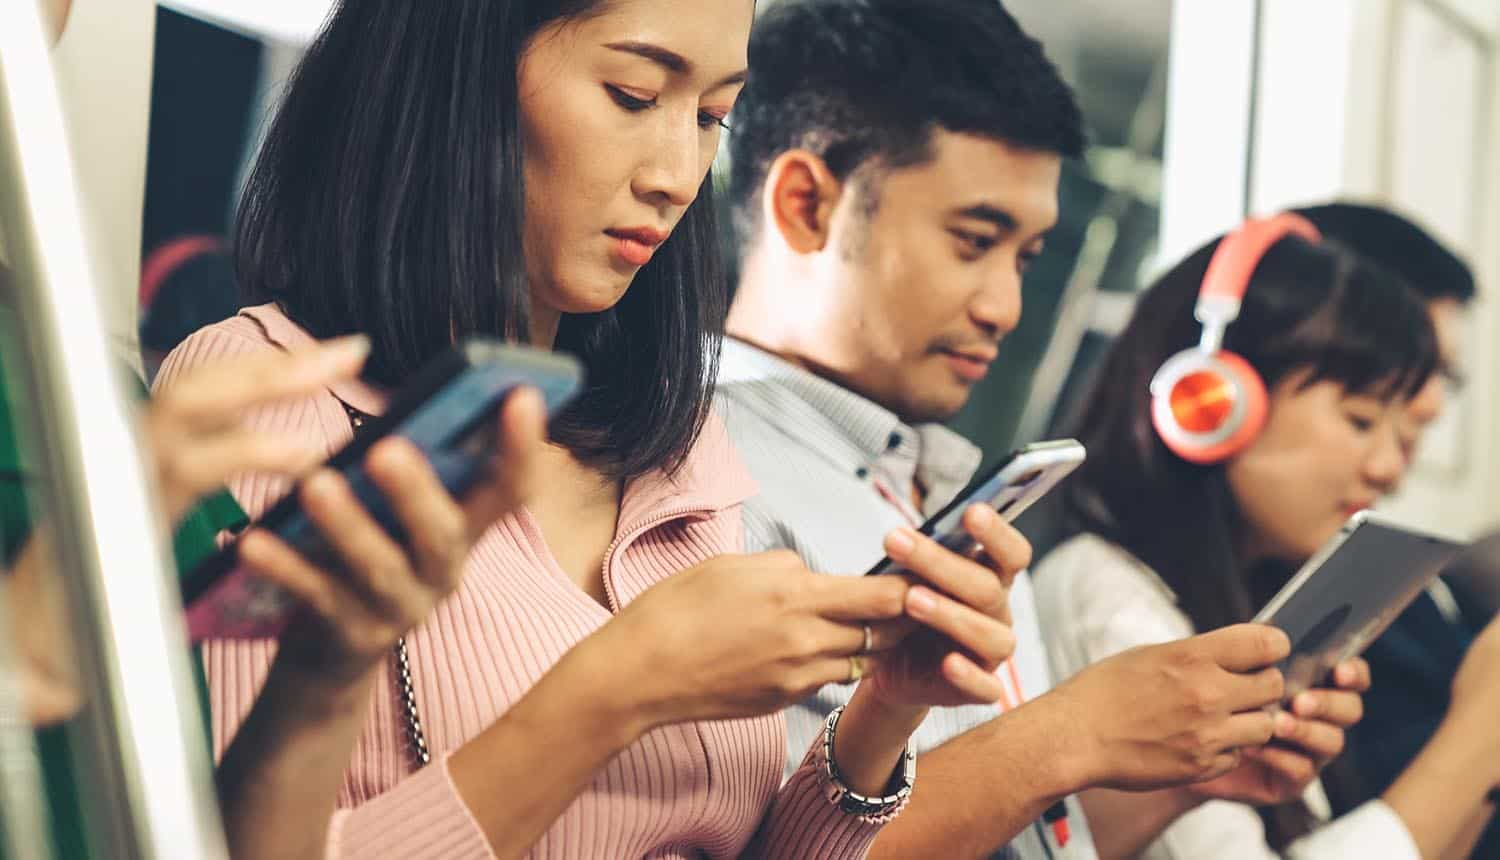 Young people using mobile phone in public underground train showing data breach by digital ad industry